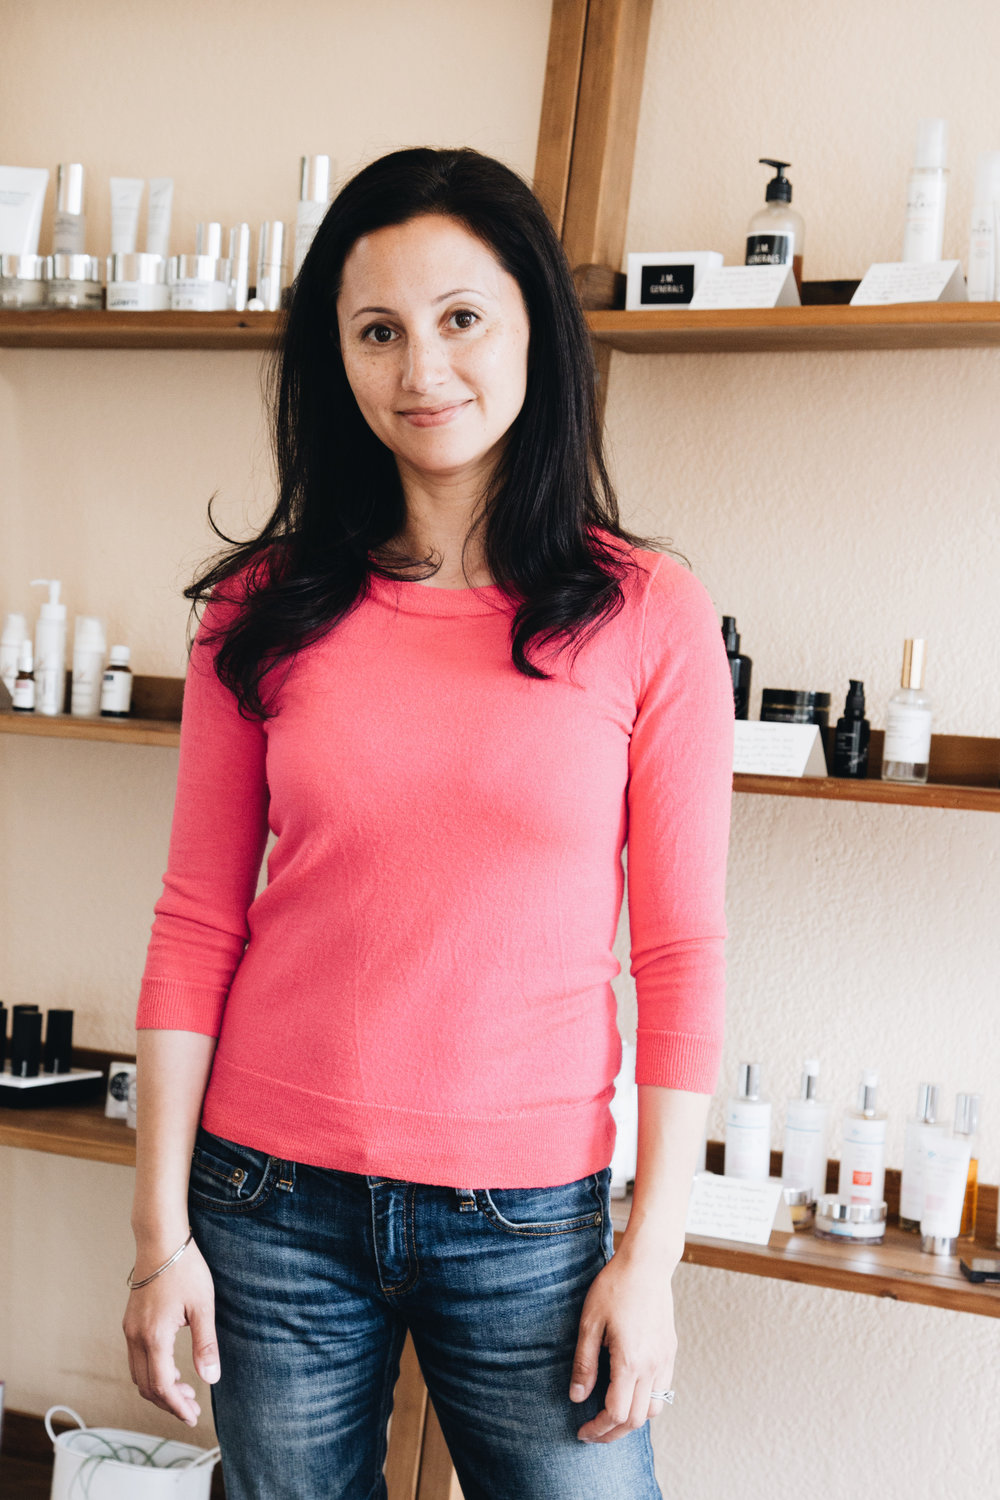 Dara Kennedy - Ayla's owner and founder